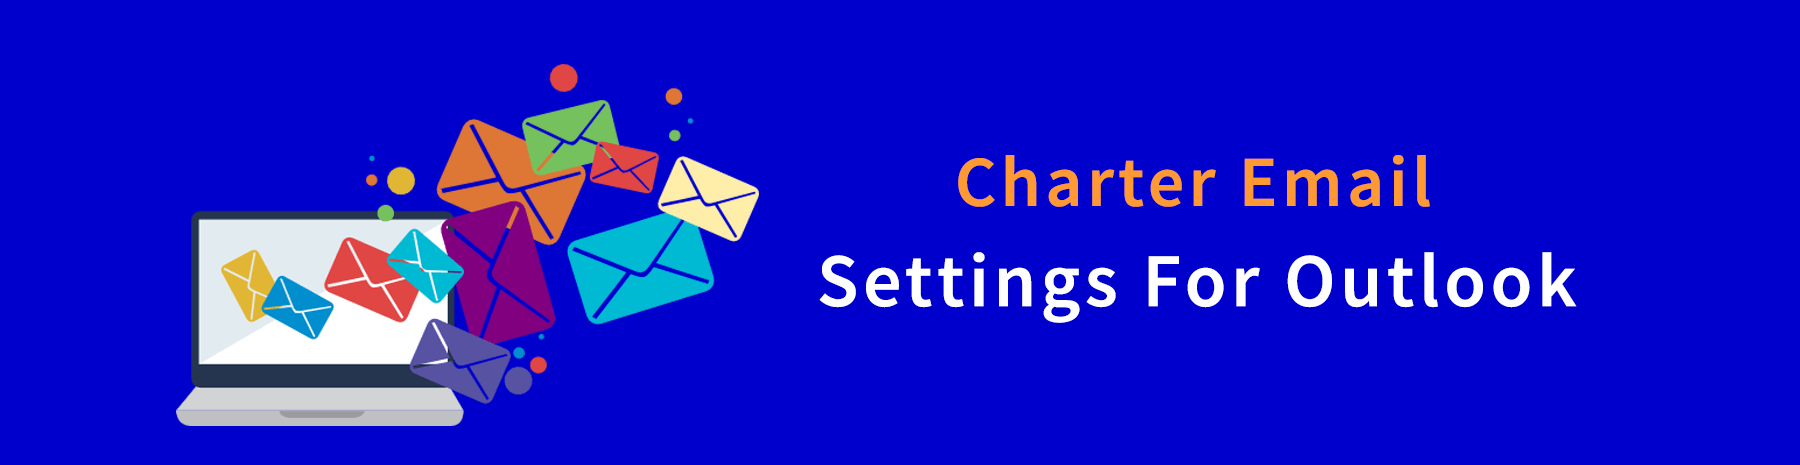 Charter-Email-Settings-For-Outlook